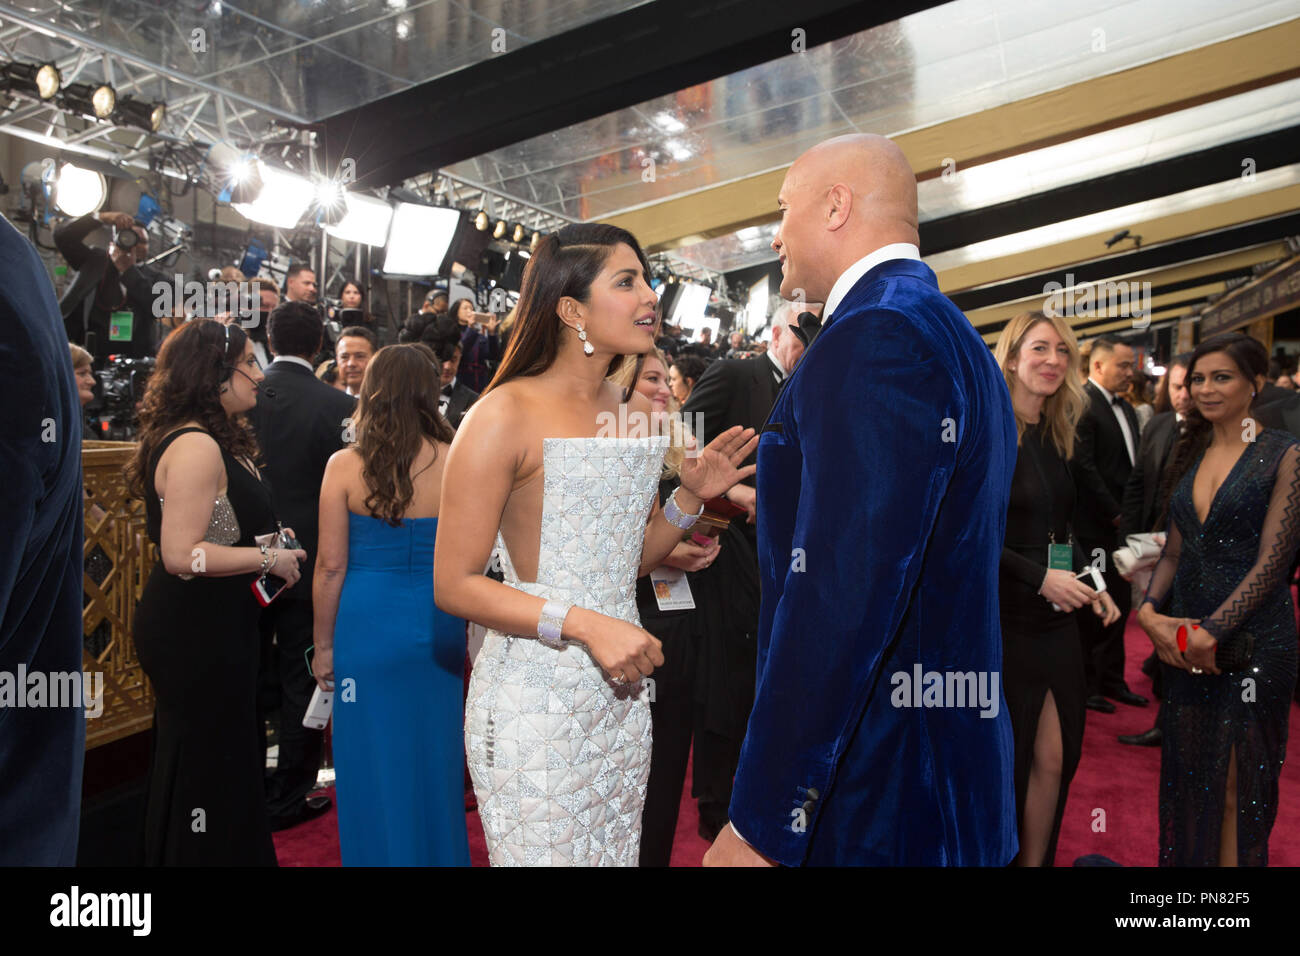 Priyanka Chopra talks with Dwayne Johnson on the red carpet of The 89th Oscars® at the Dolby® Theatre in Hollywood, CA on Sunday, February 26, 2017.  File Reference # 33242_708THA  For Editorial Use Only -  All Rights Reserved - Stock Image